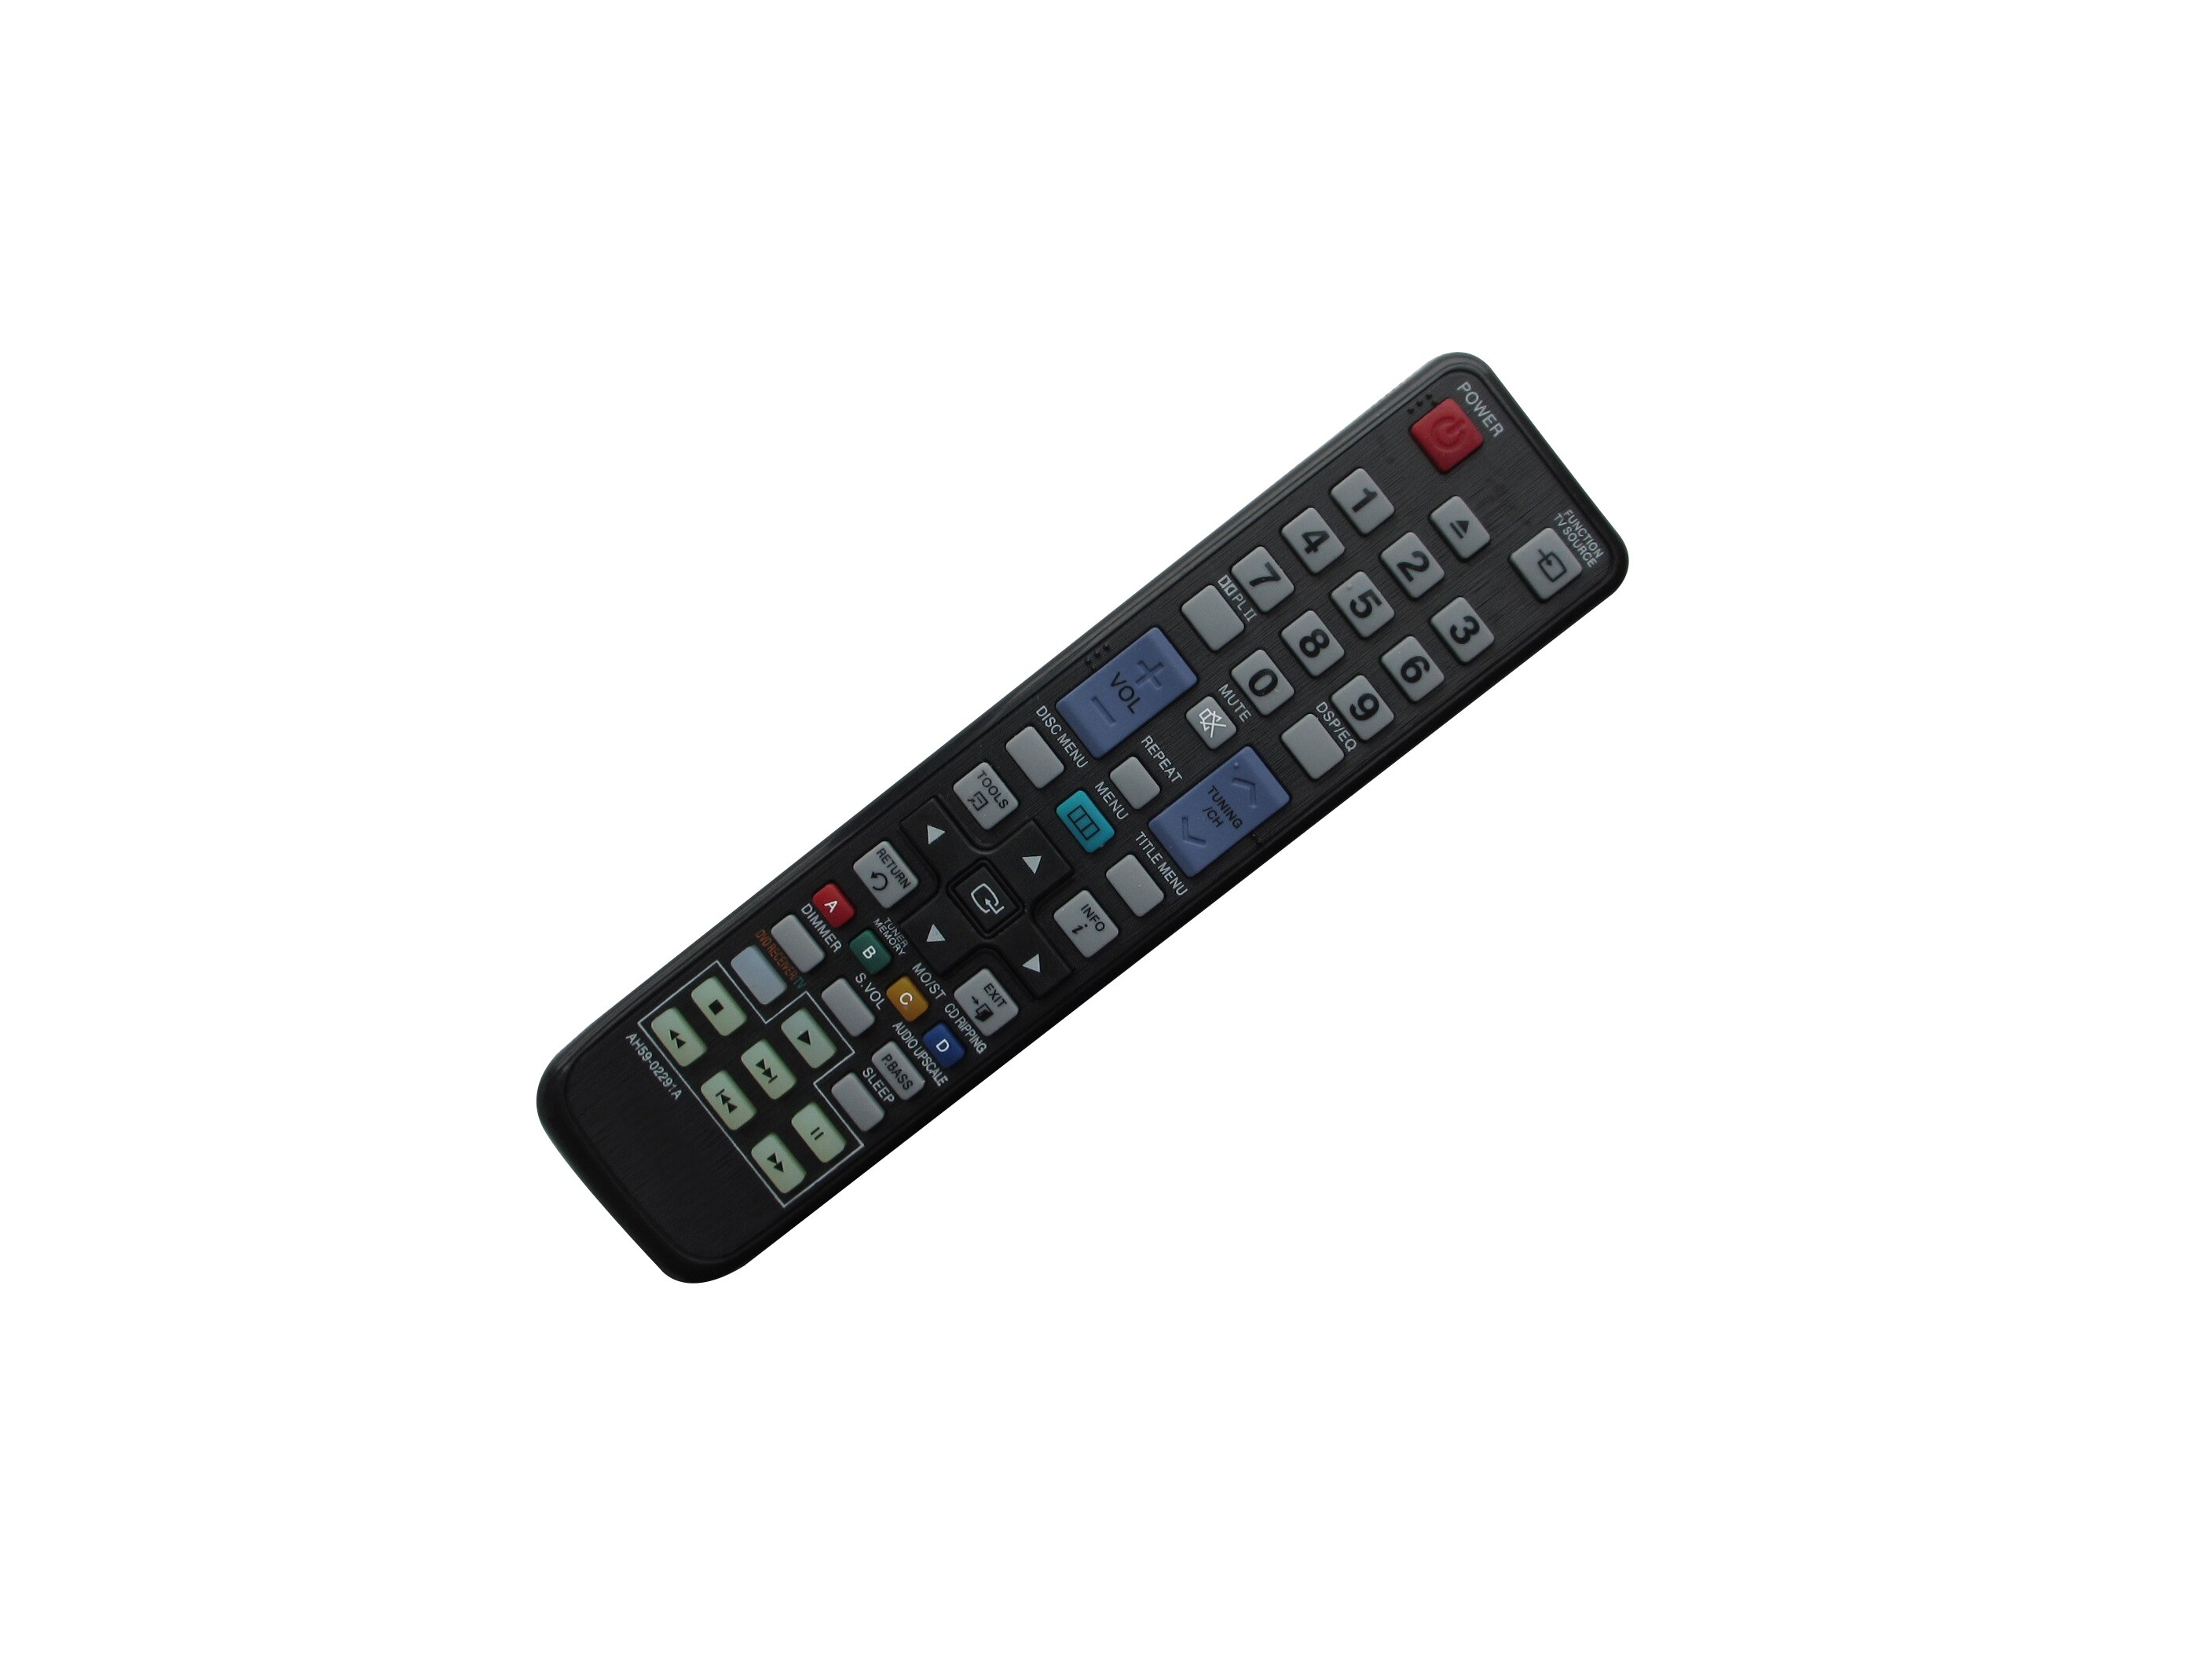 Remote Control For Samsung AH59-02326A AH5902328A HT-C9950W AH59-02358A AH59-02303A HT-C5200 HT-C5800 DVD Home Theater System